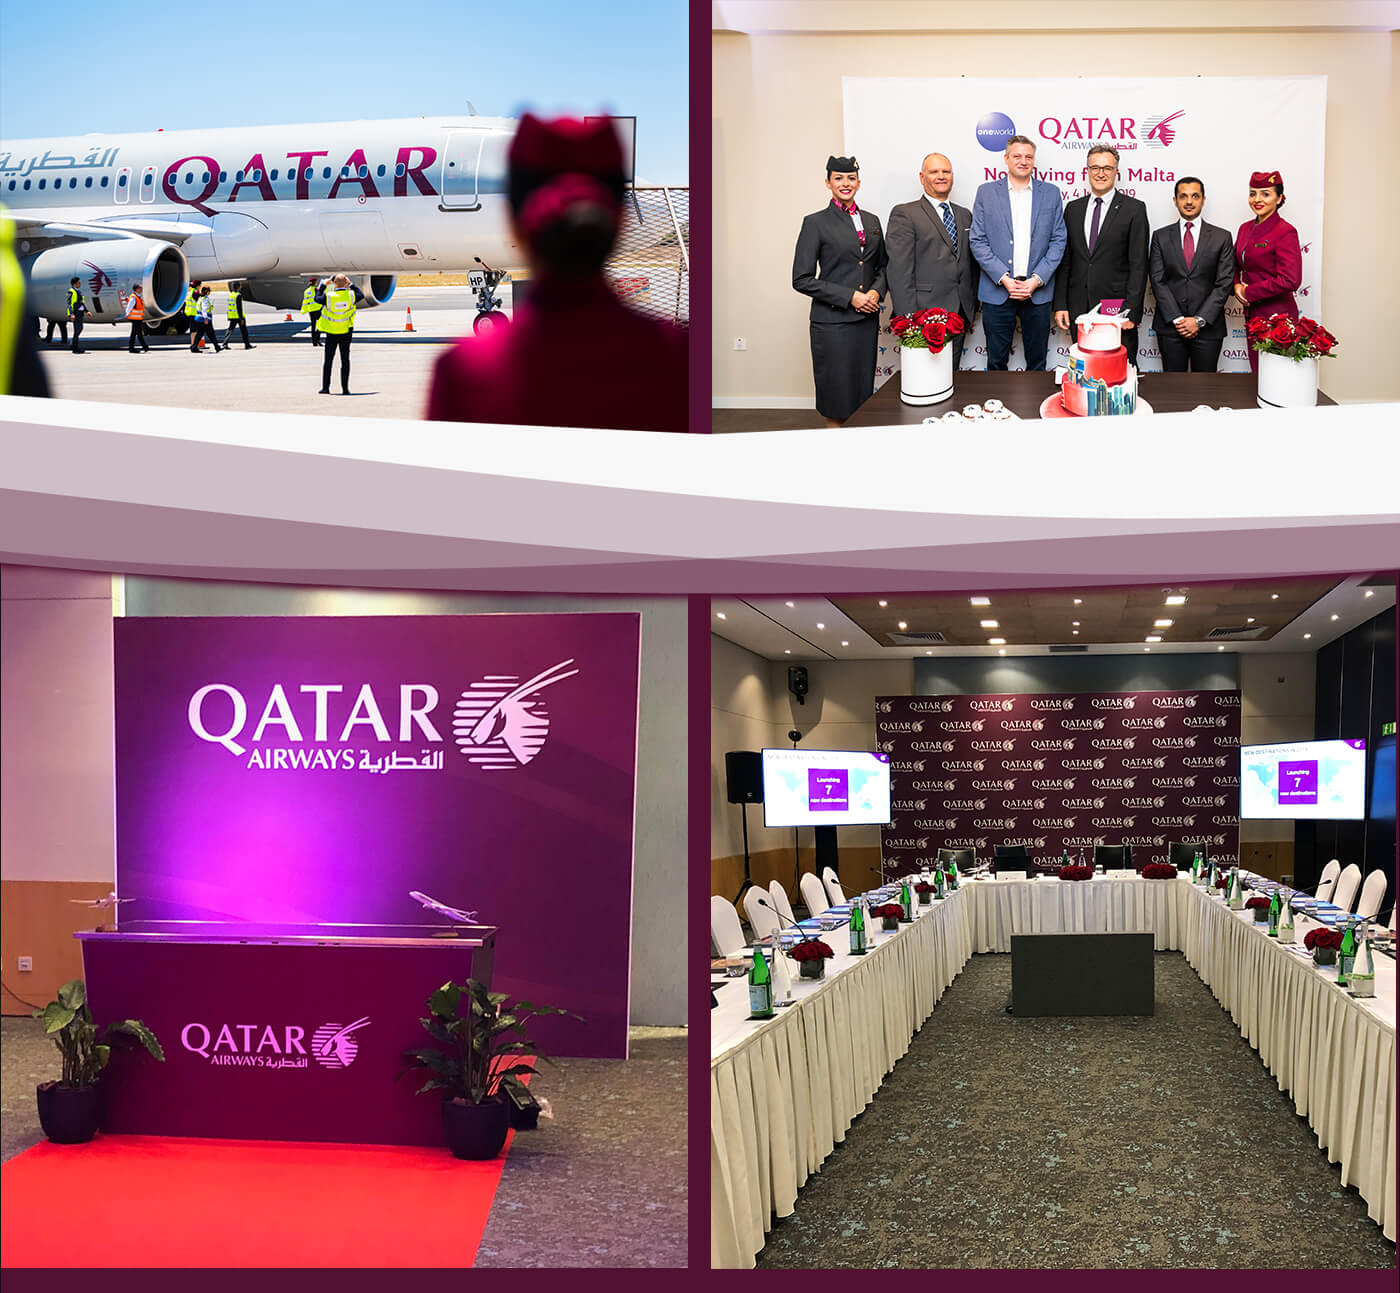 Qatar-x-CS_BH-full_09 case study